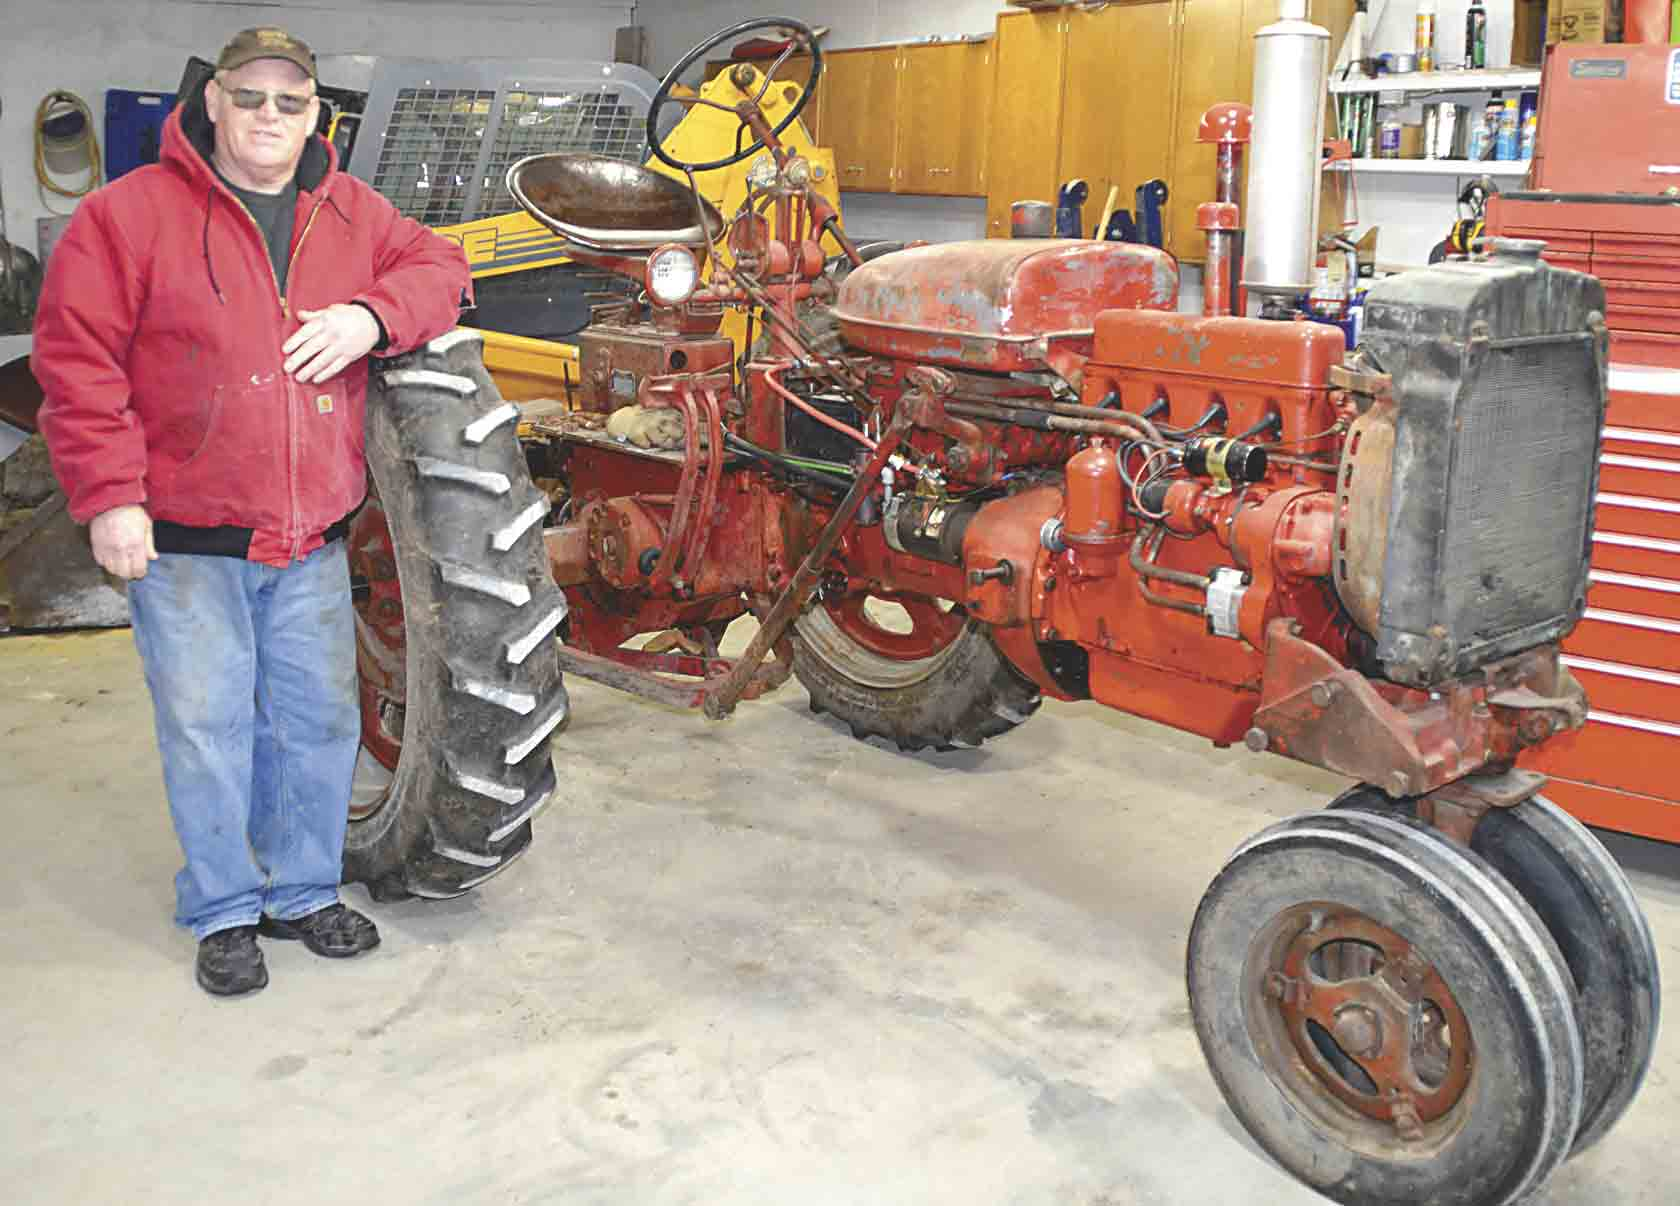 Dennis Marmann, owner of Rusty Iron Tractor Restoration, says he is lucky to be alive after triple-bypass surgery on Dec. 26, 2018, saved his life. Marmann is recovering nicely and looks forward to getting back into his shop so he can continue to restore tractors for his customers.(...